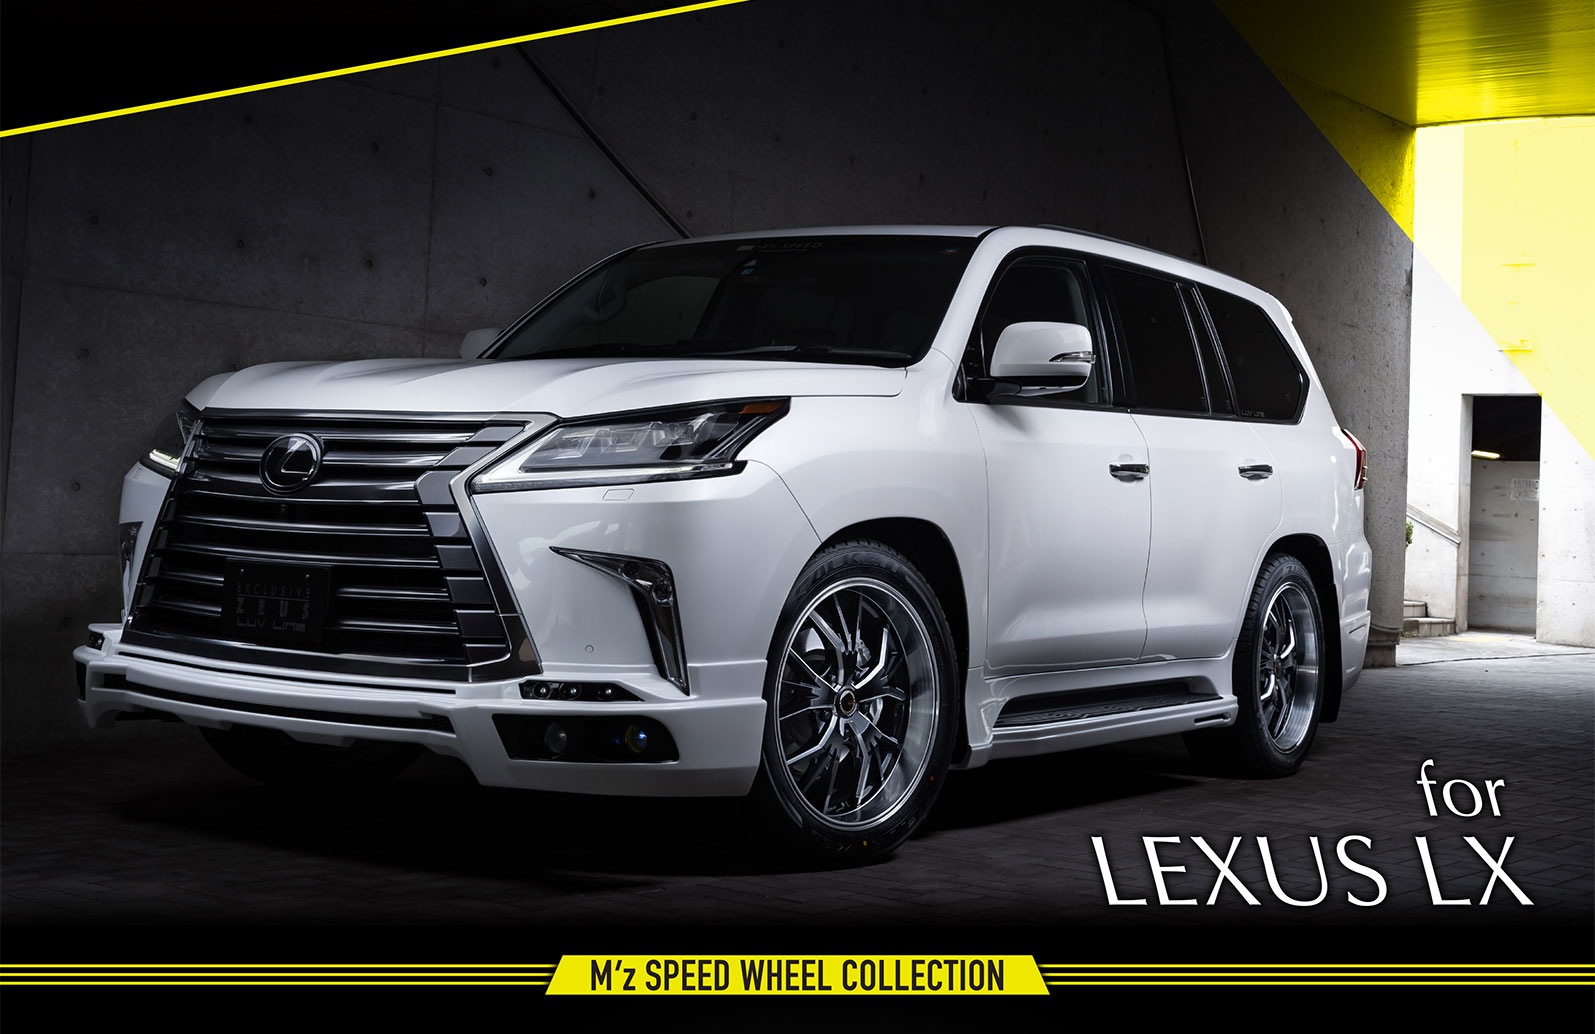 for LEXUS LX M'z SPEED WHEEL COLLECTION